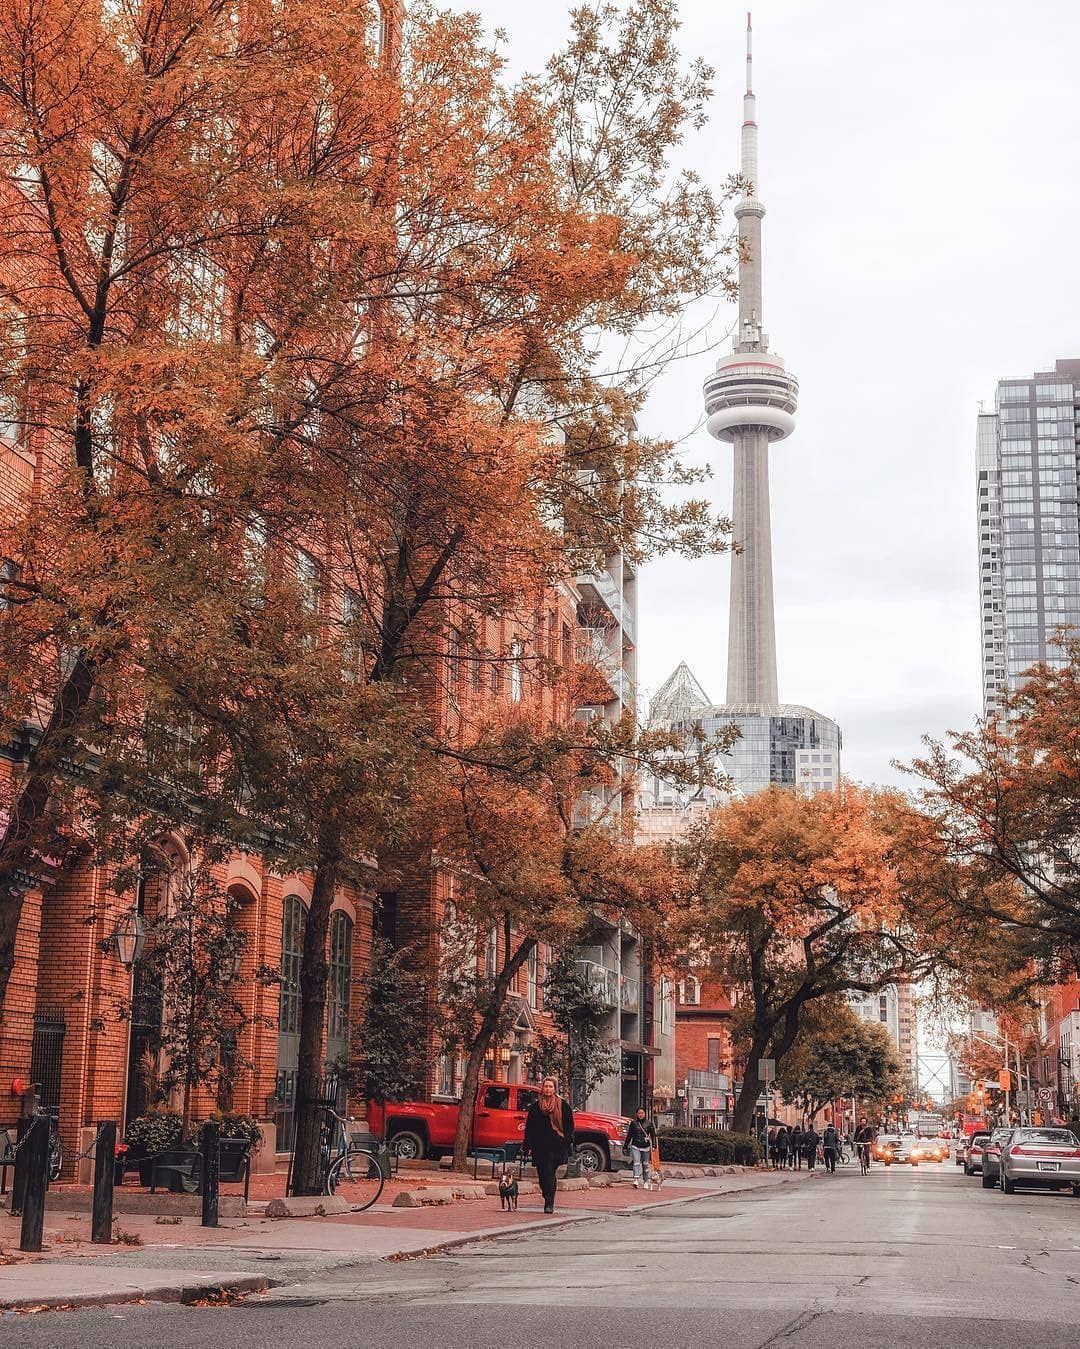 ", Love Toronto 💙 on Instagram: ""Can't get enough of beautiful fall days like this. 👌🍁💛 Photo by @arjsun."", My Travels Blog 2020, My Travels Blog 2020"